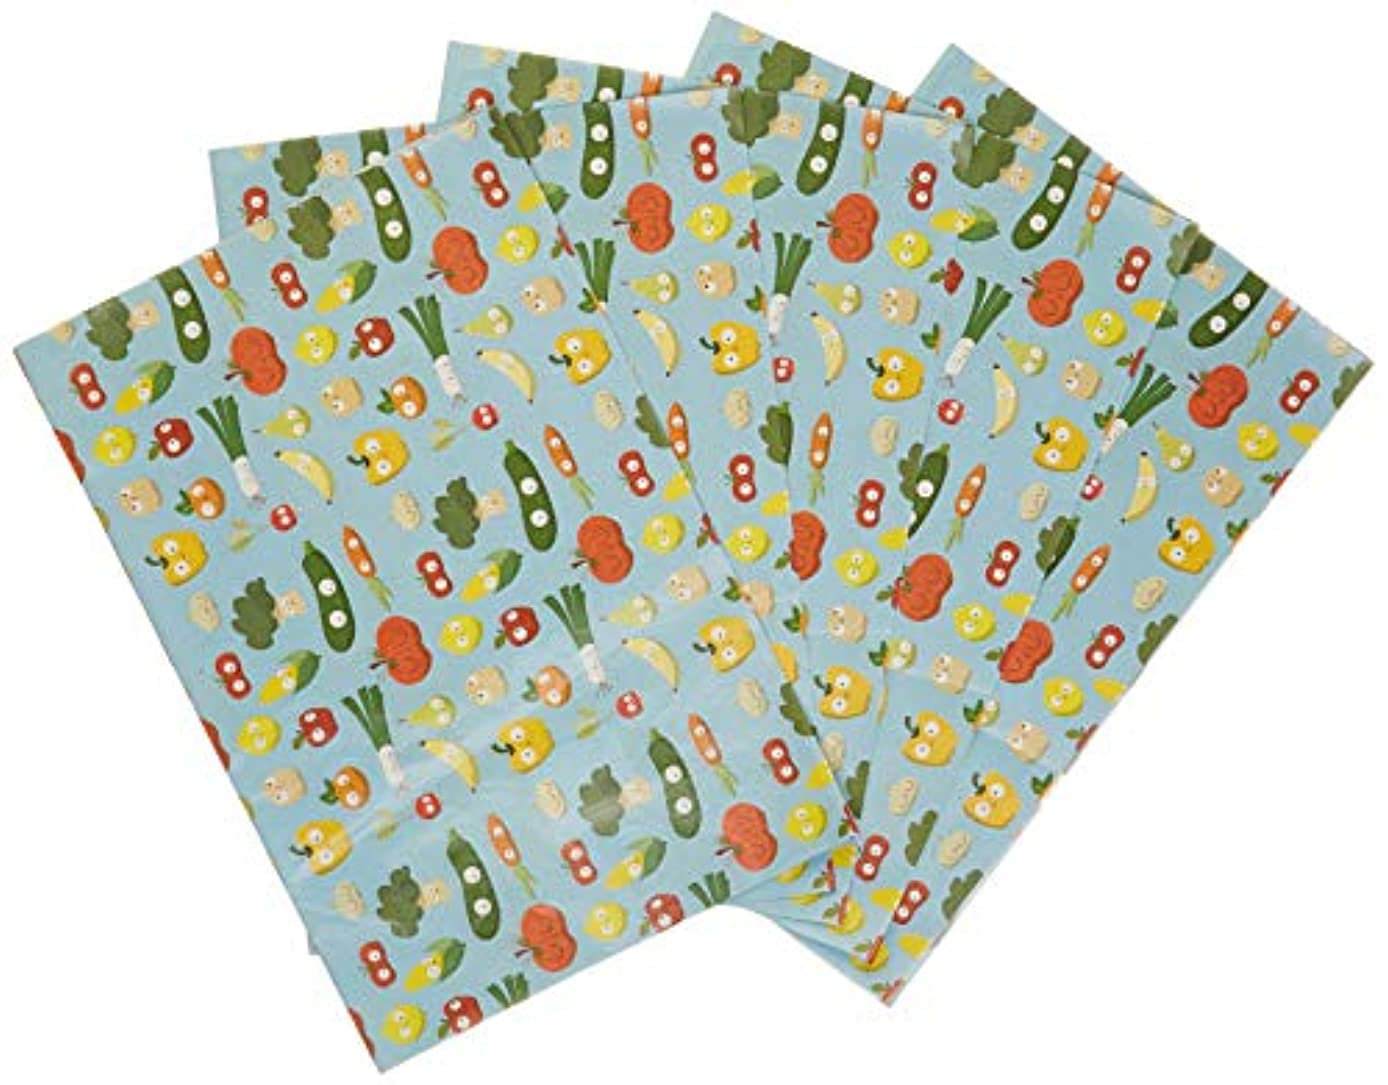 Decopatch FDA730O 395 x 298 mm Paper Number 730 Fruit and Vegetables Pack of 20 Sheets